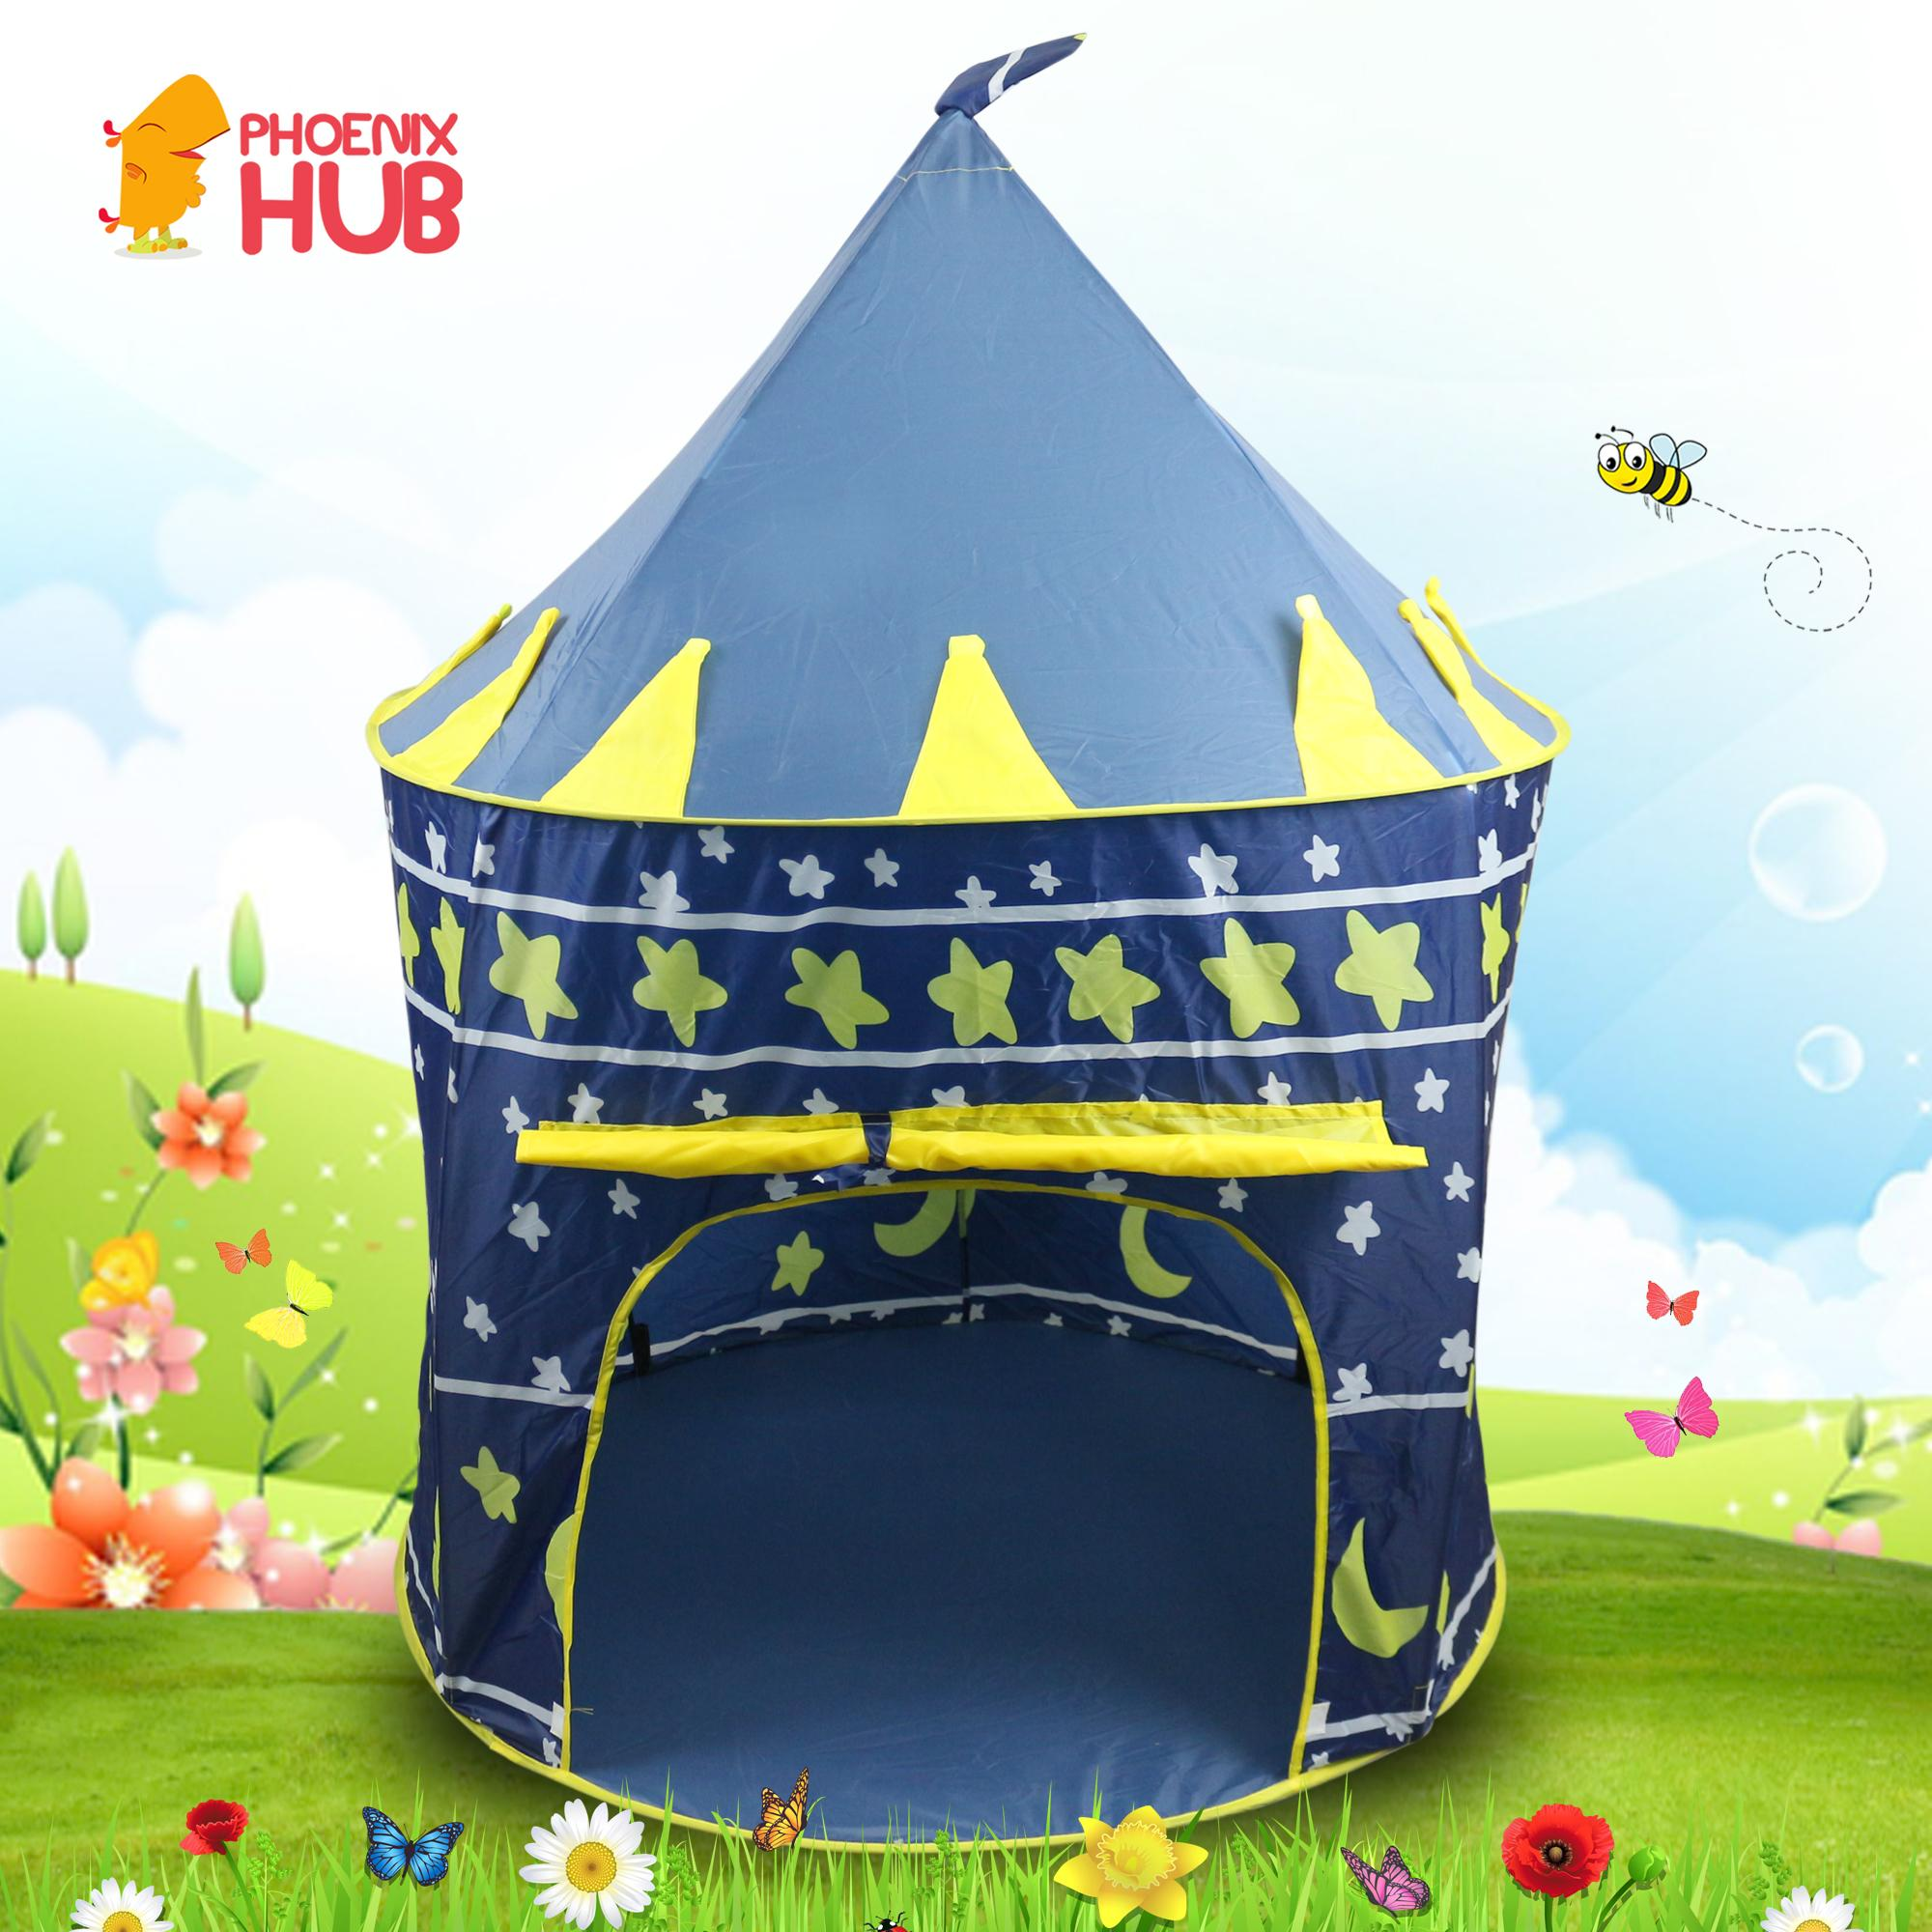 5ec61409a PhoenixHub Outdoor Indoor Portable Kids Play House Prince   Princess Castle  Tent